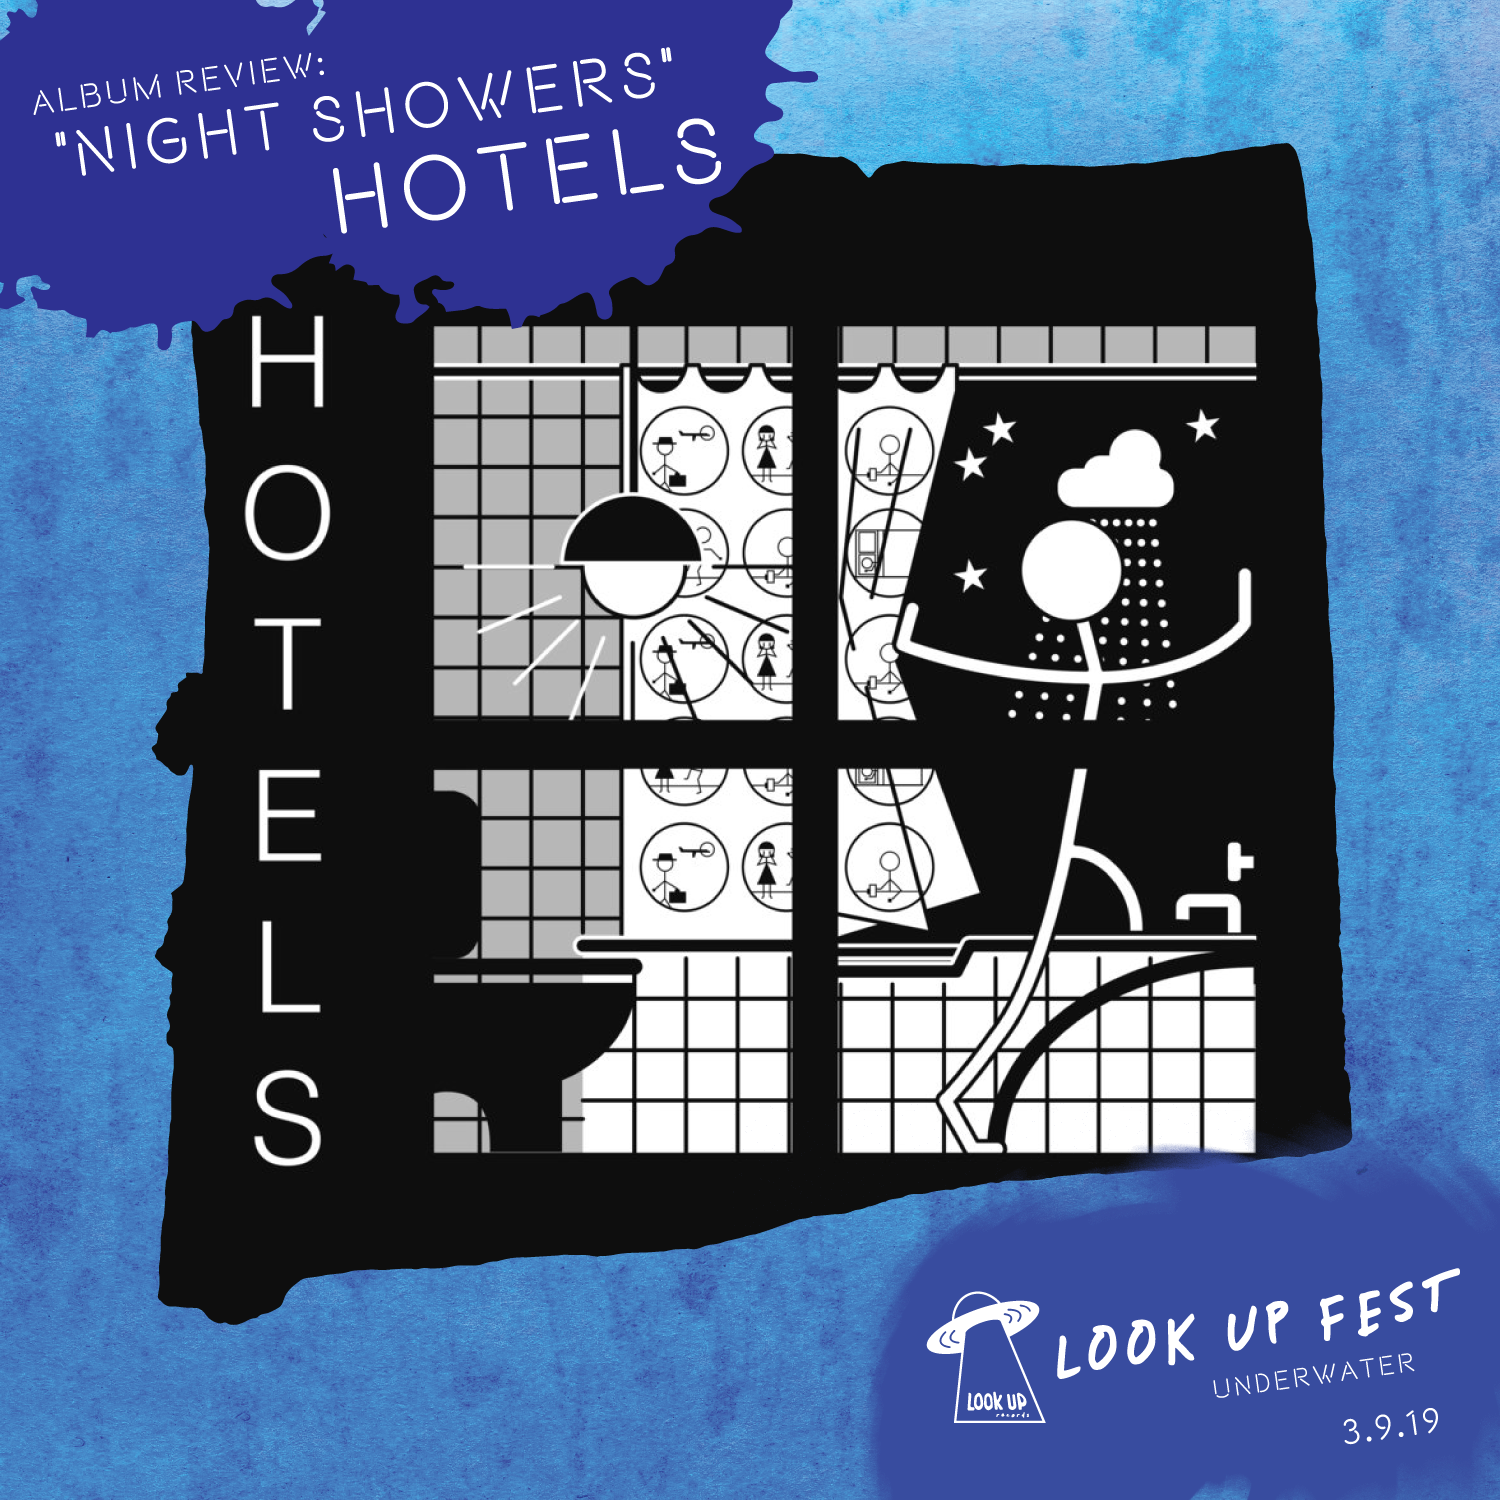 NIGHT SHOWERS HOTELS REVIEW